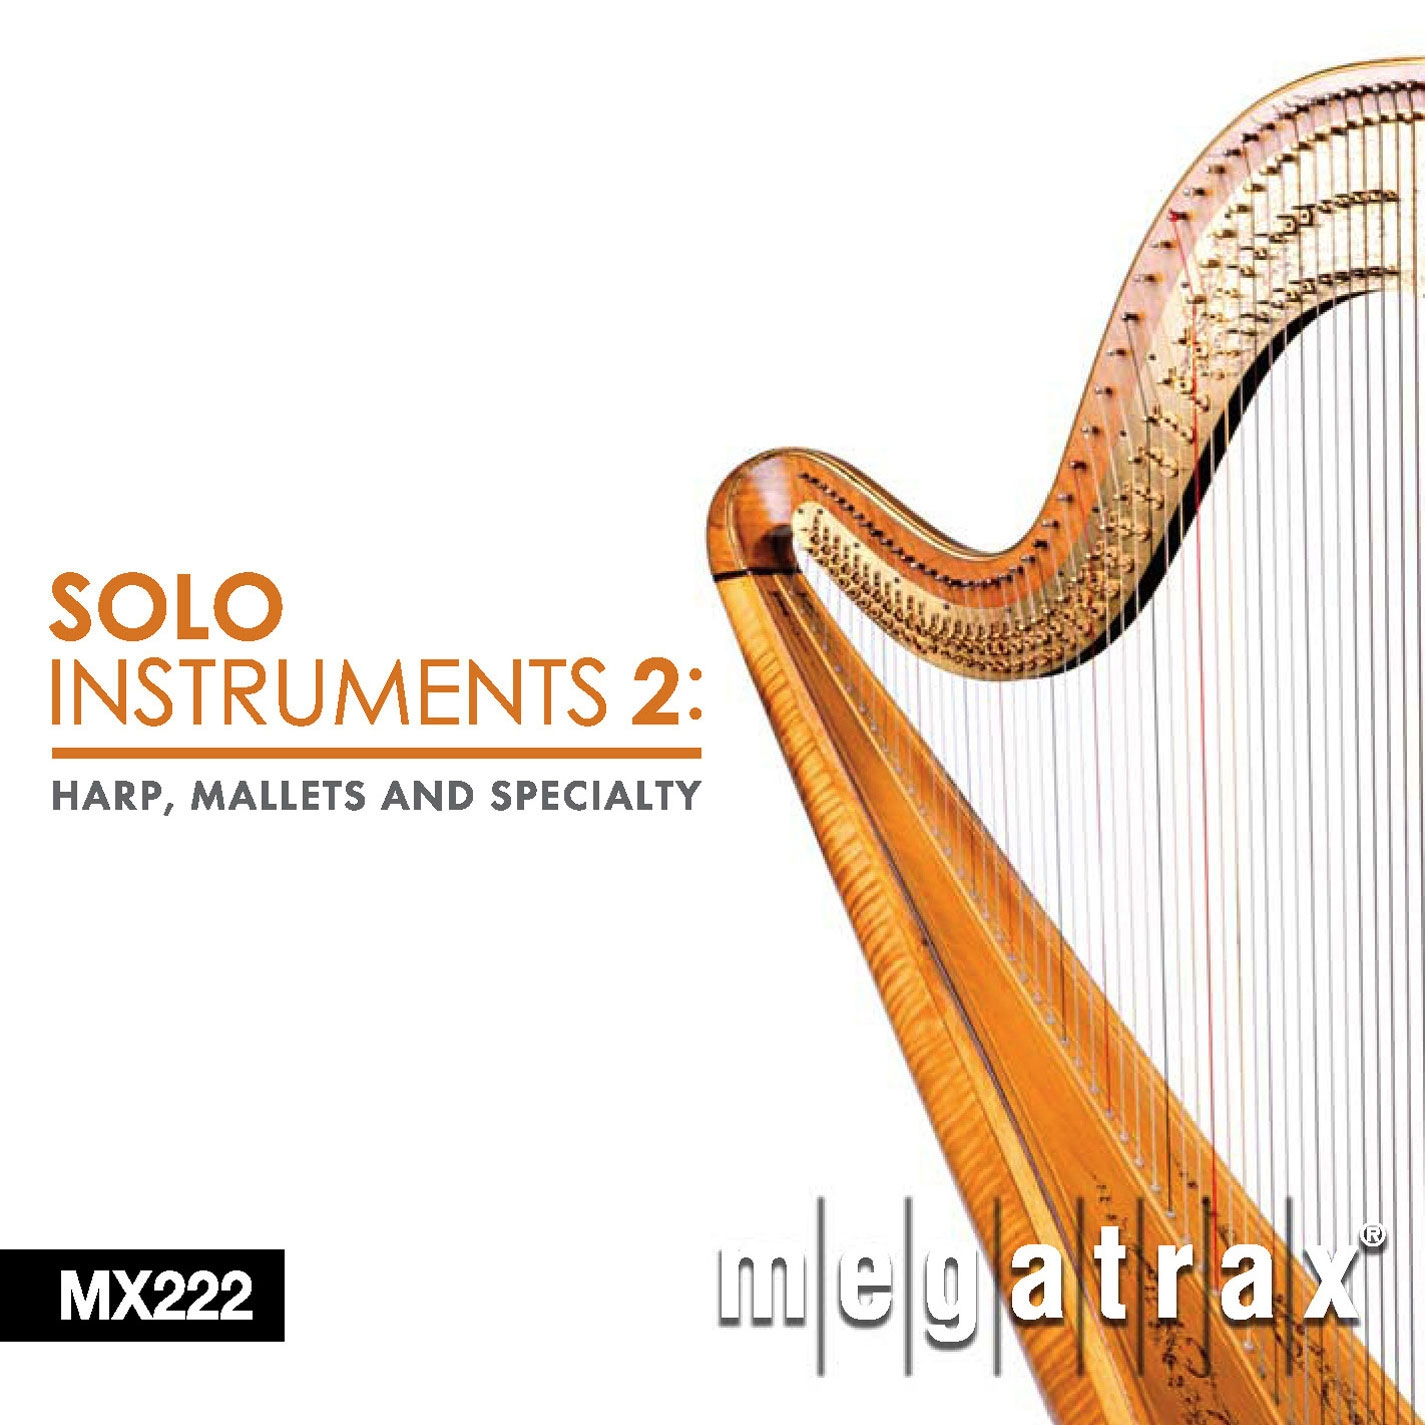 Solo Instruments 2